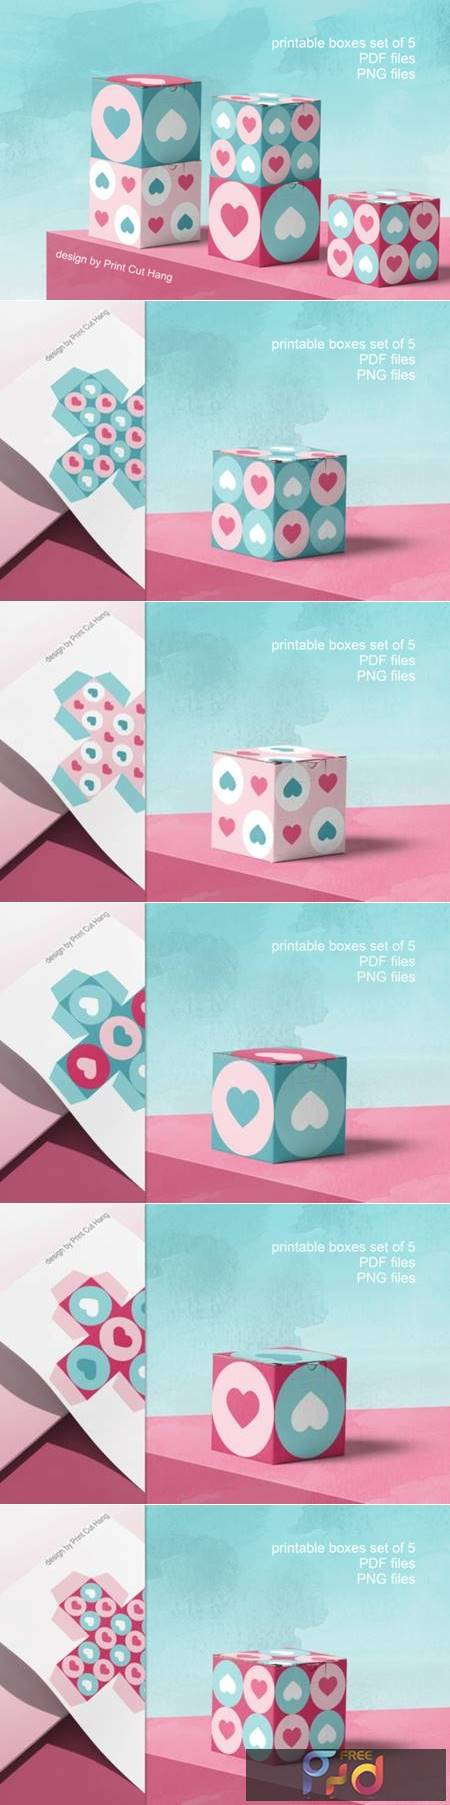 Printable Boxes for Valentine Gifts PDF 3783483 1